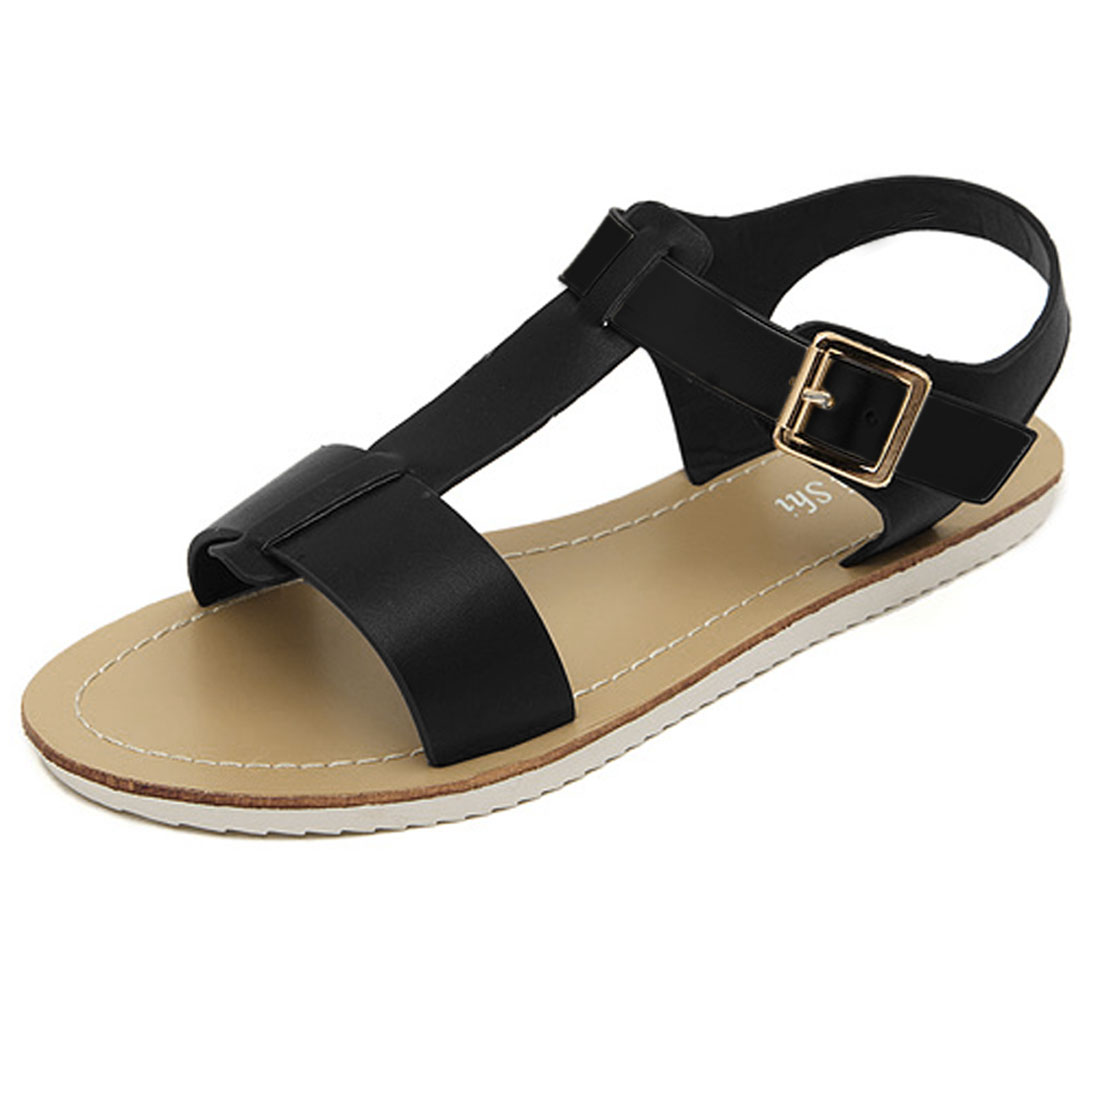 Ladies Non-skid Rubber Sole Peep Toe Flat Sandals Black US 7.5